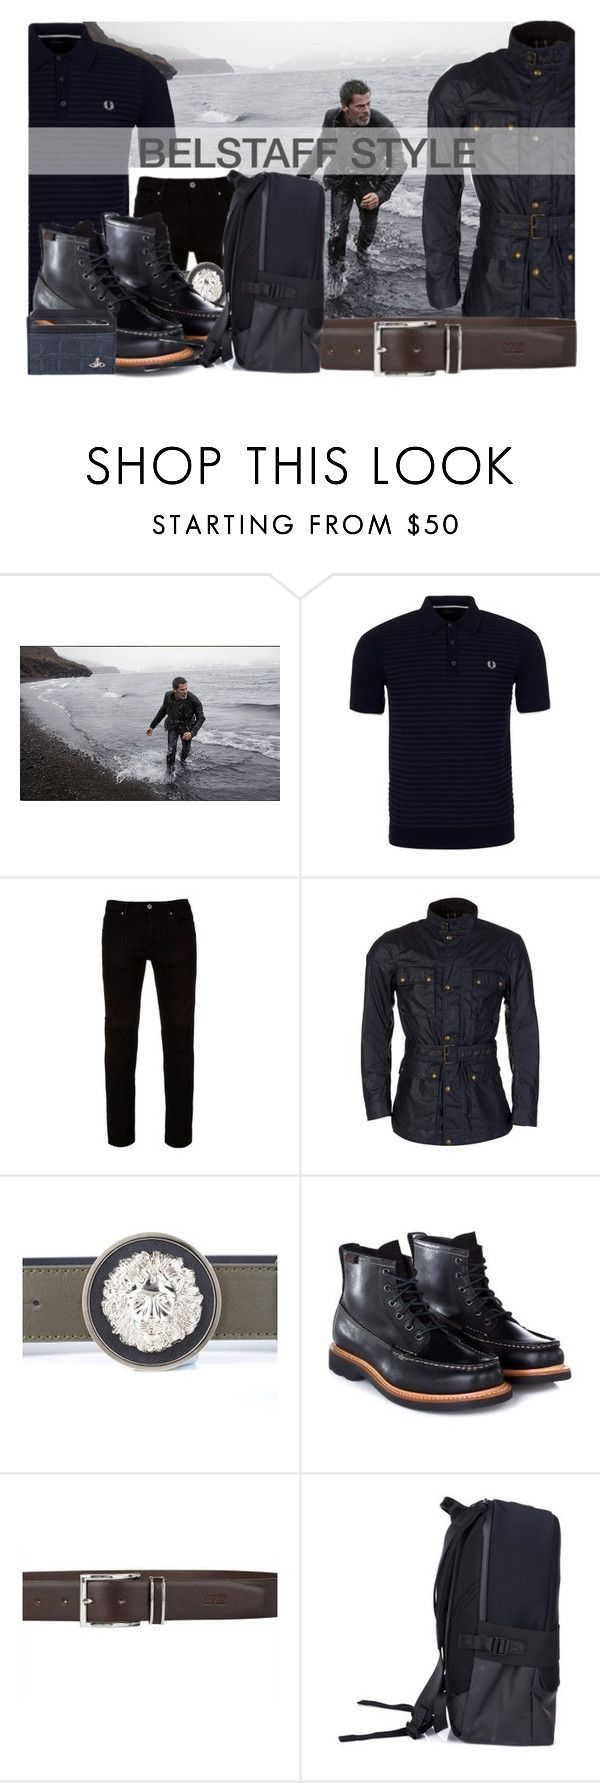 """Belstaff Style"" by zeeandcoltd ❤ liked on Polyvore featuring Fred Perry, Belstaff, Vivienne Westwood, men's fashion, menswear, versace, viviennewestwood, fredperry, belstaff and ghbass"